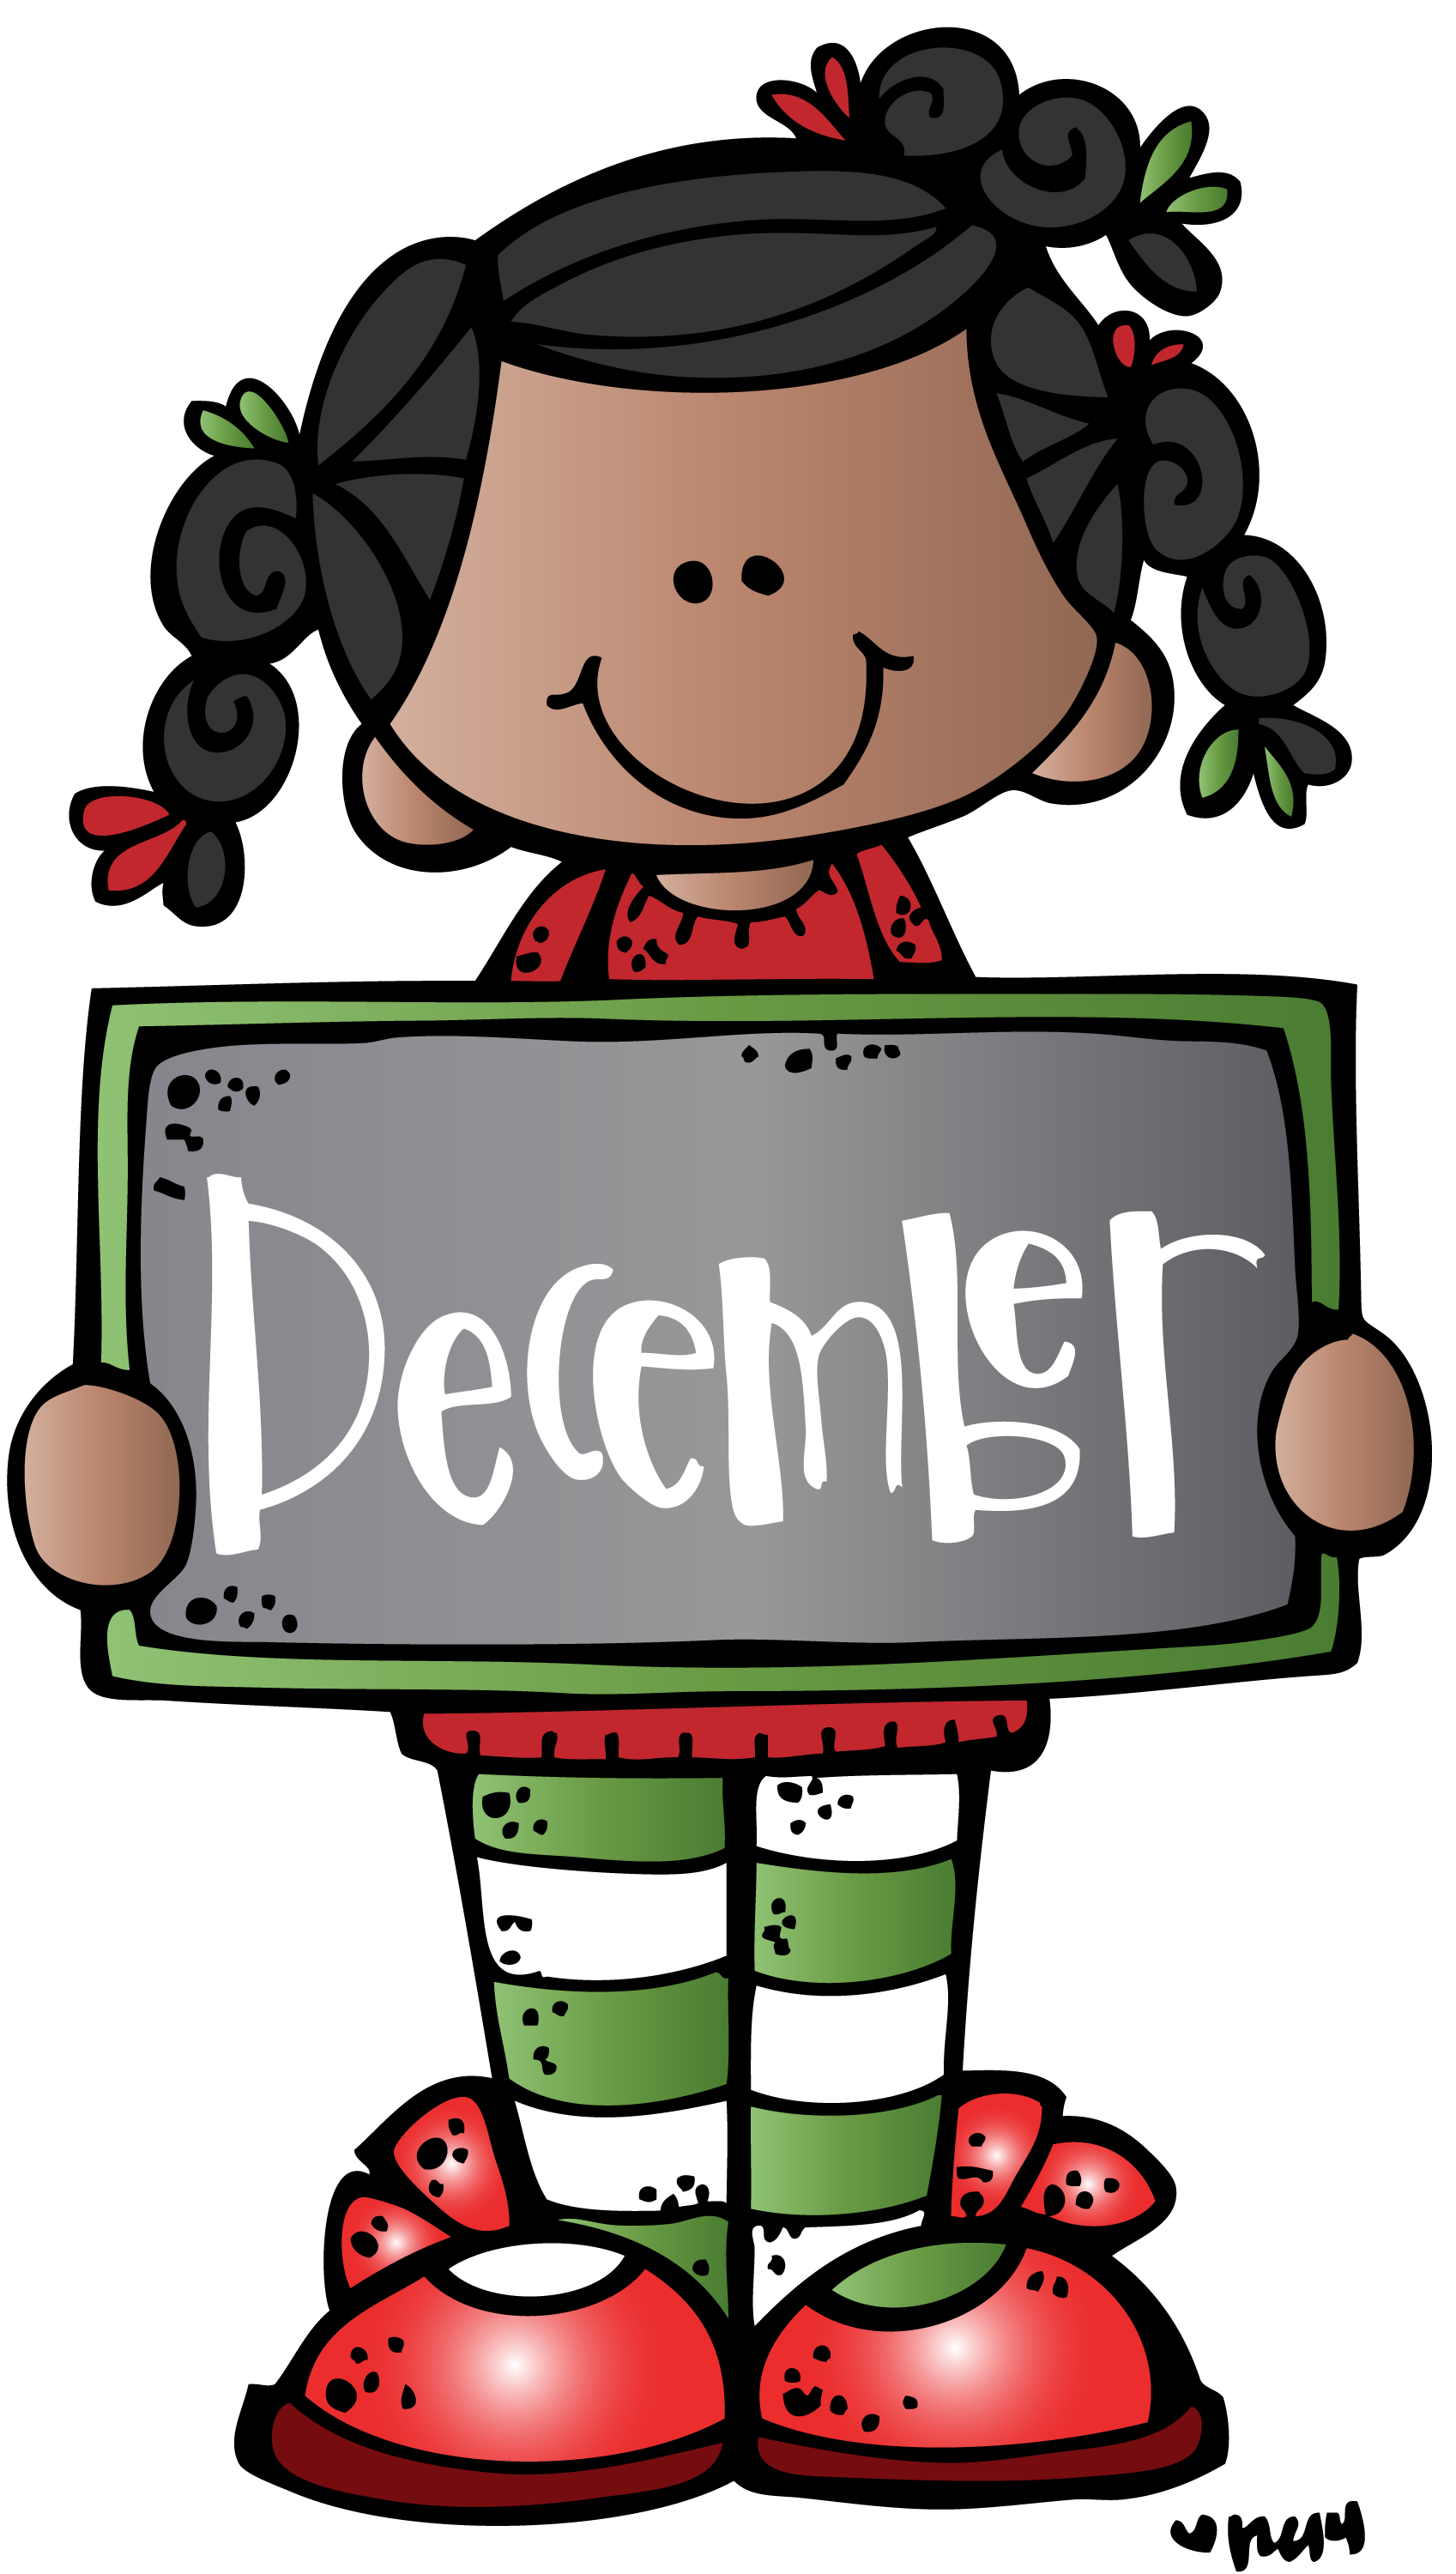 december mkb c melonheadz illustrating llc 2014 colored 1 png rh pinterest com december clip art images december clip art pictures free